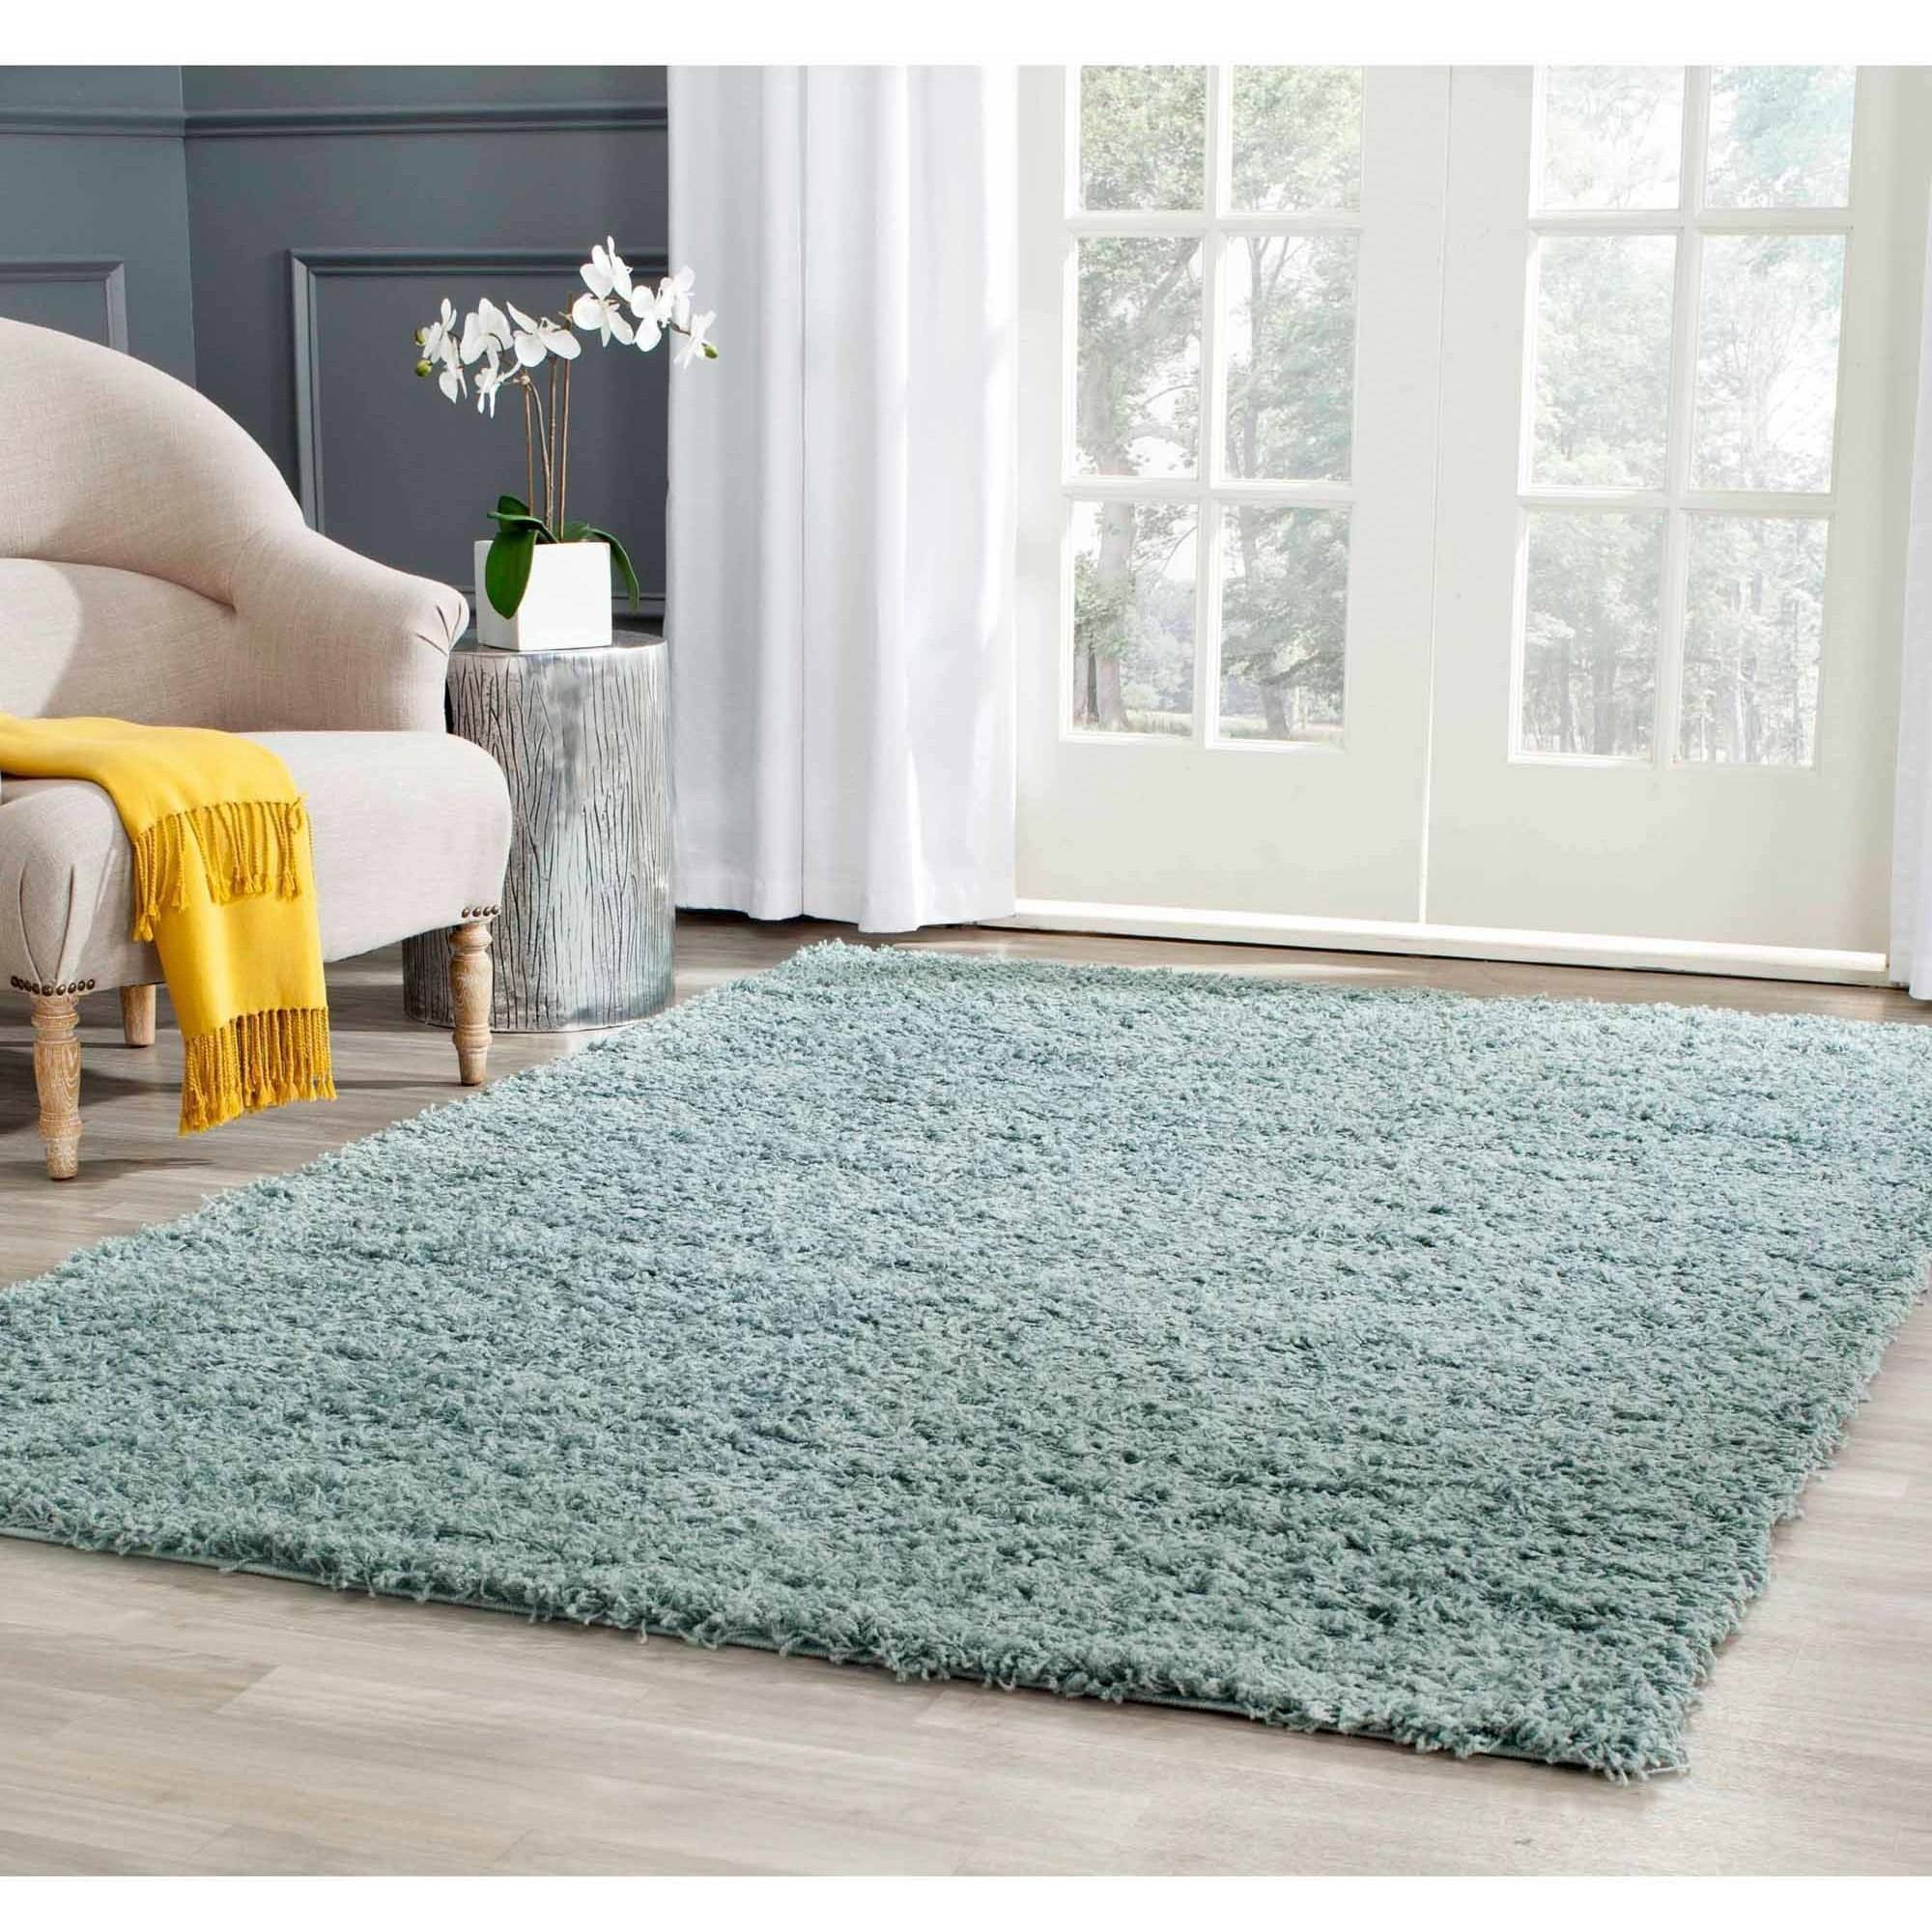 Well Woven Kings Court Kitchen Bakery Kitchen Green Area Rug ...